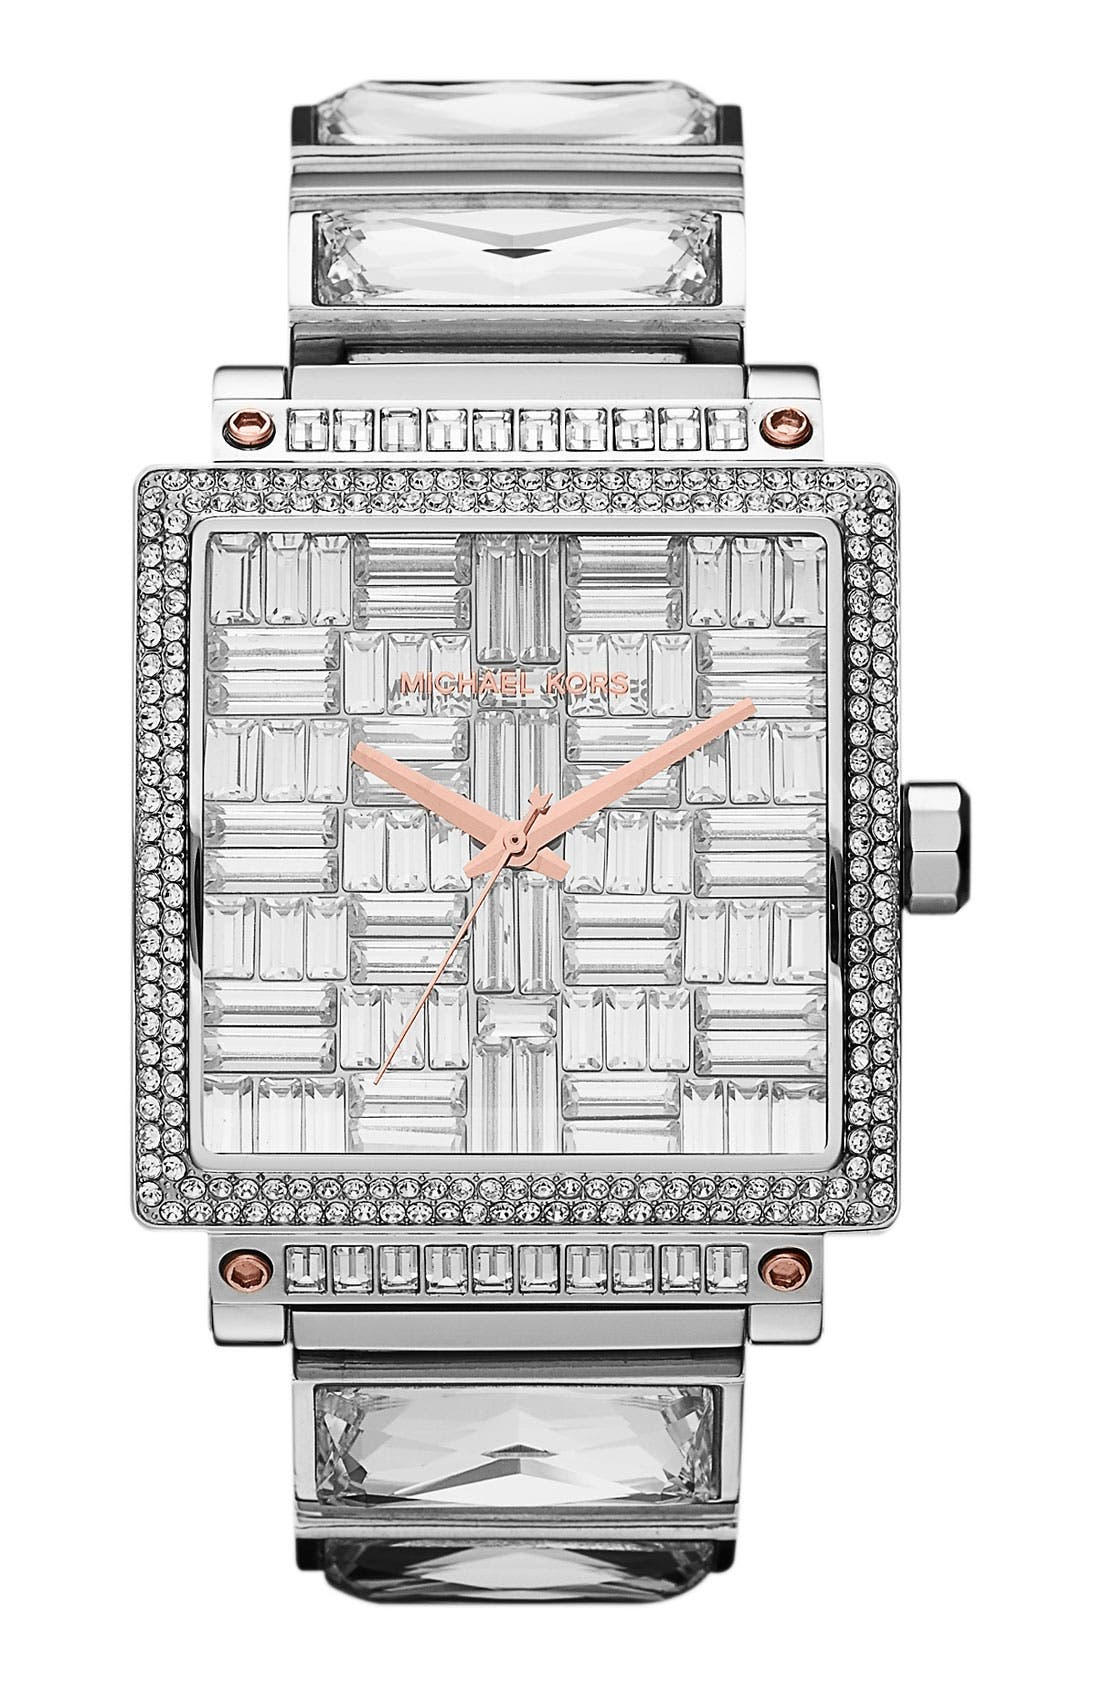 Alternate Image 1 Selected - Michael Kors 'Uptown' Baguette Crystal Square Case Watch